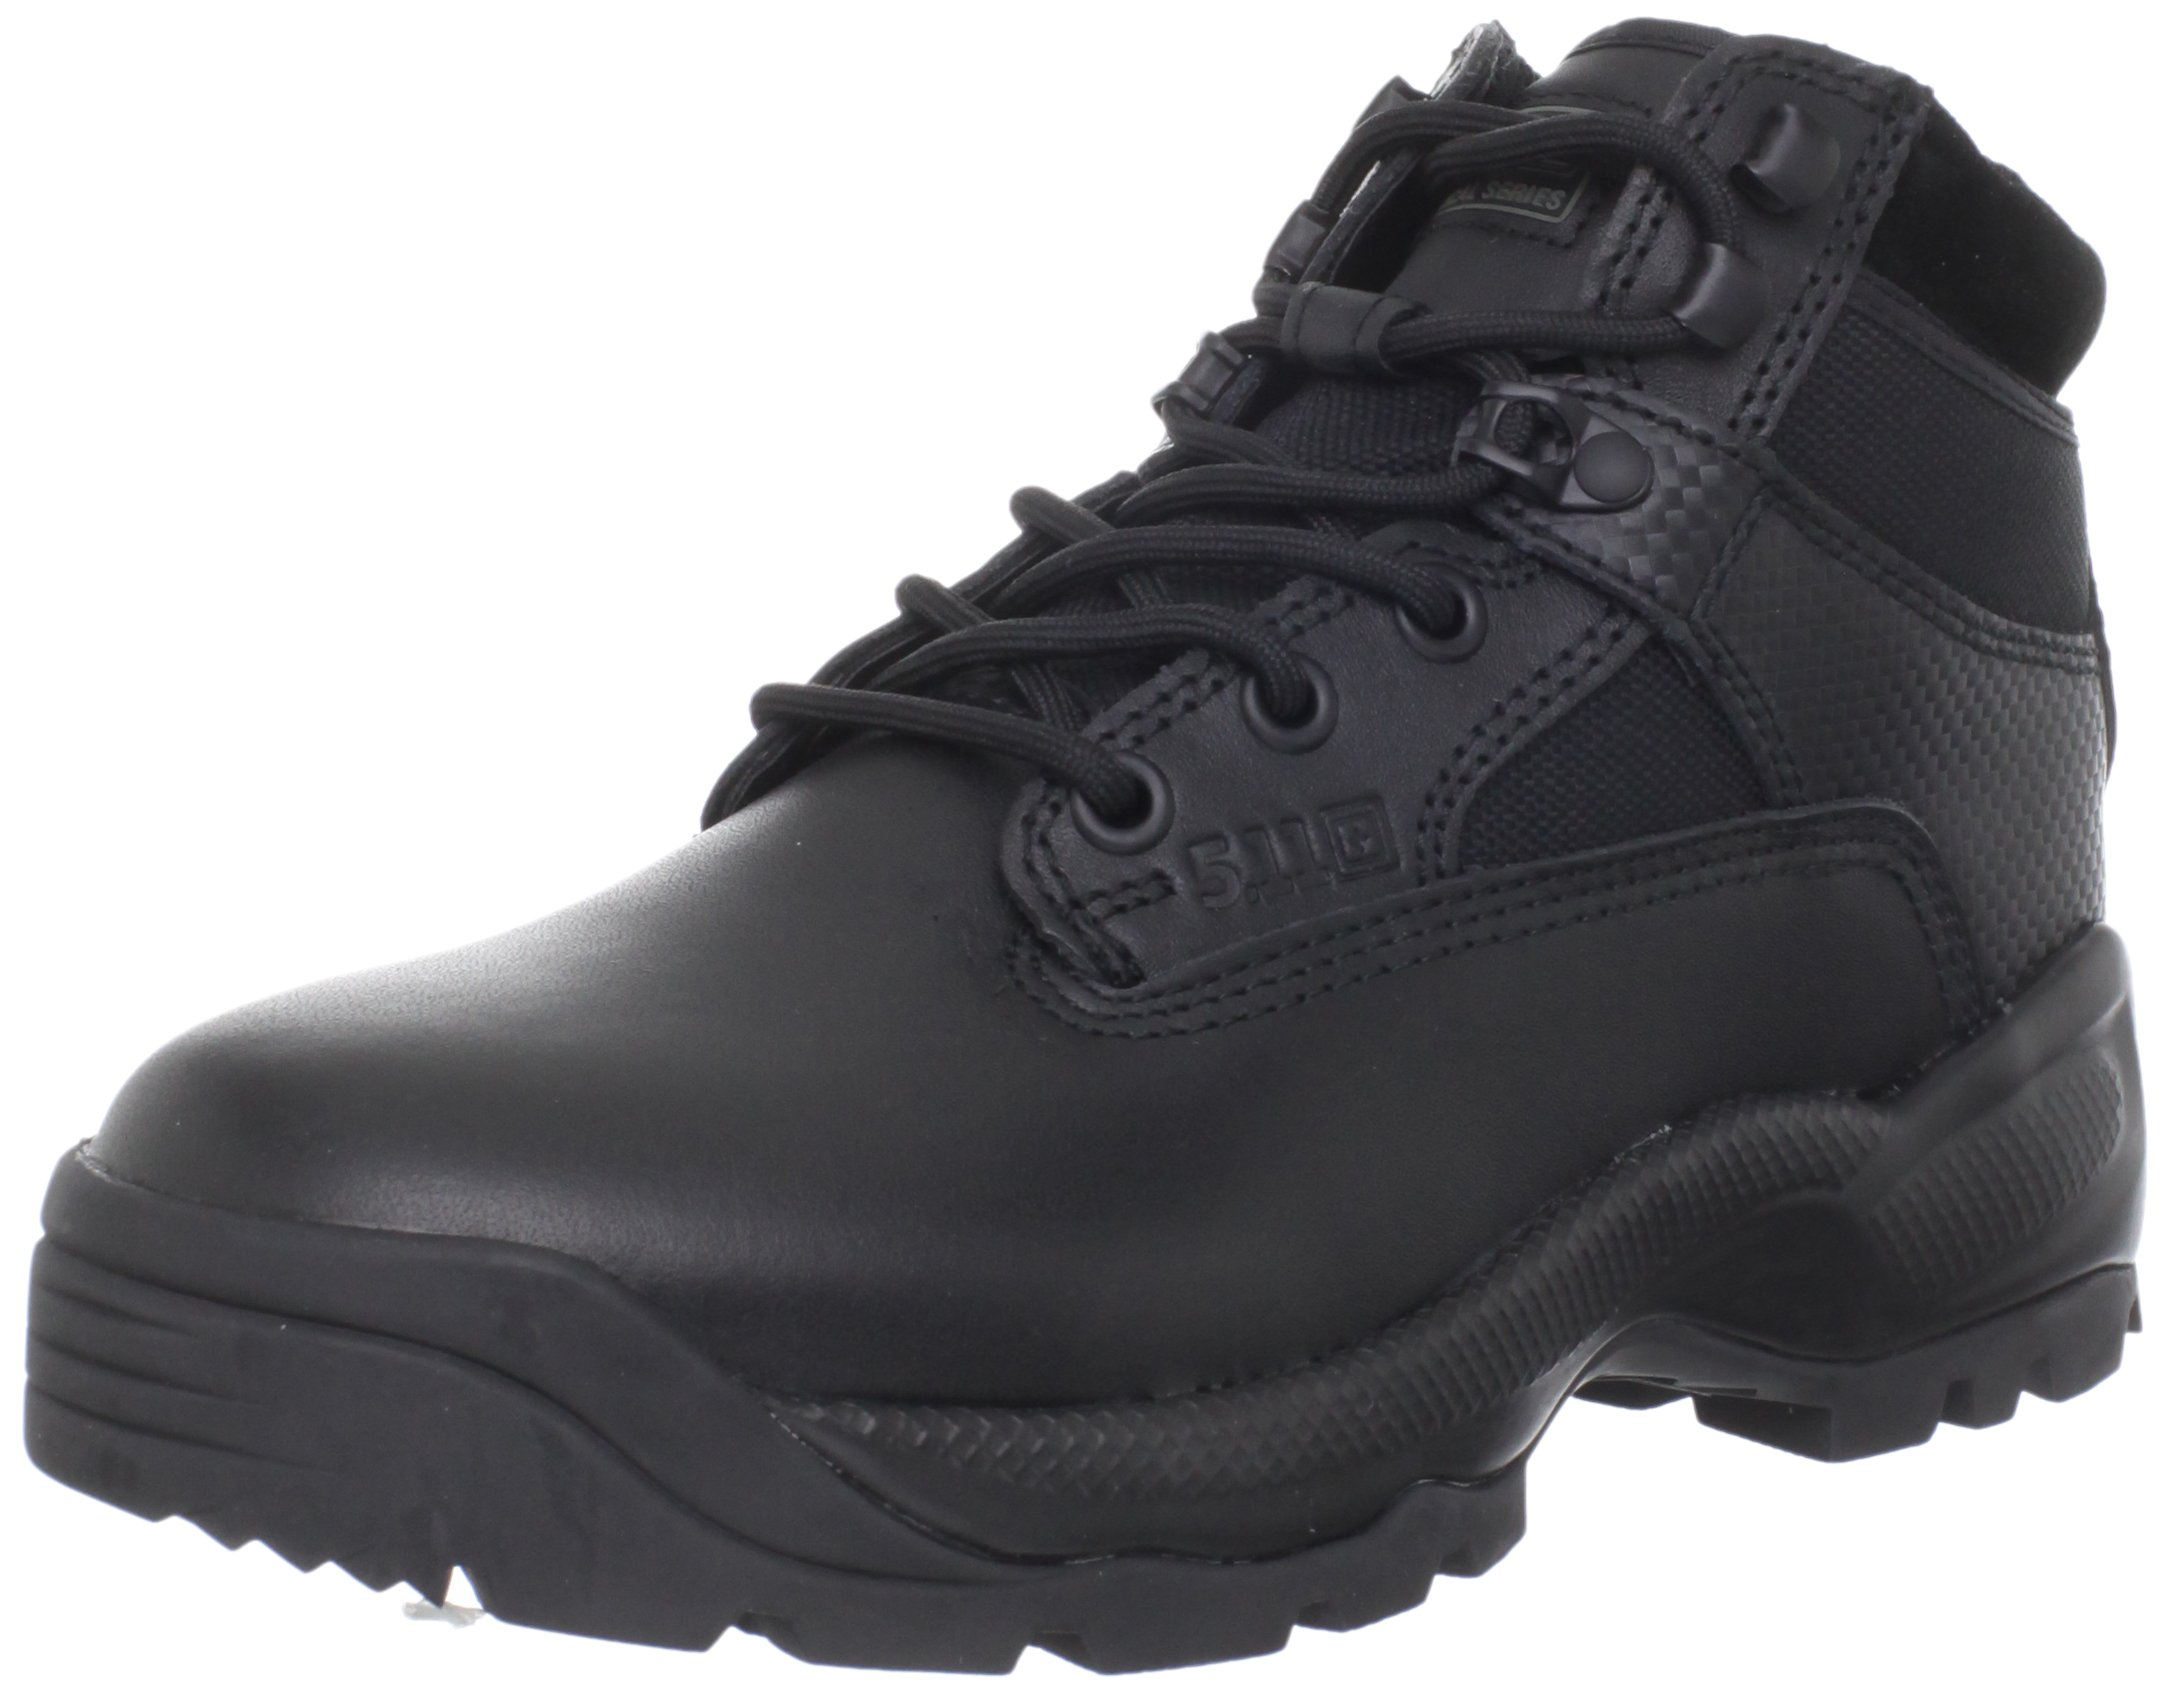 5.11 Tactical Women's A.T.A.C. 6'' With Side Zip Boot, Black, 8 D(M) US